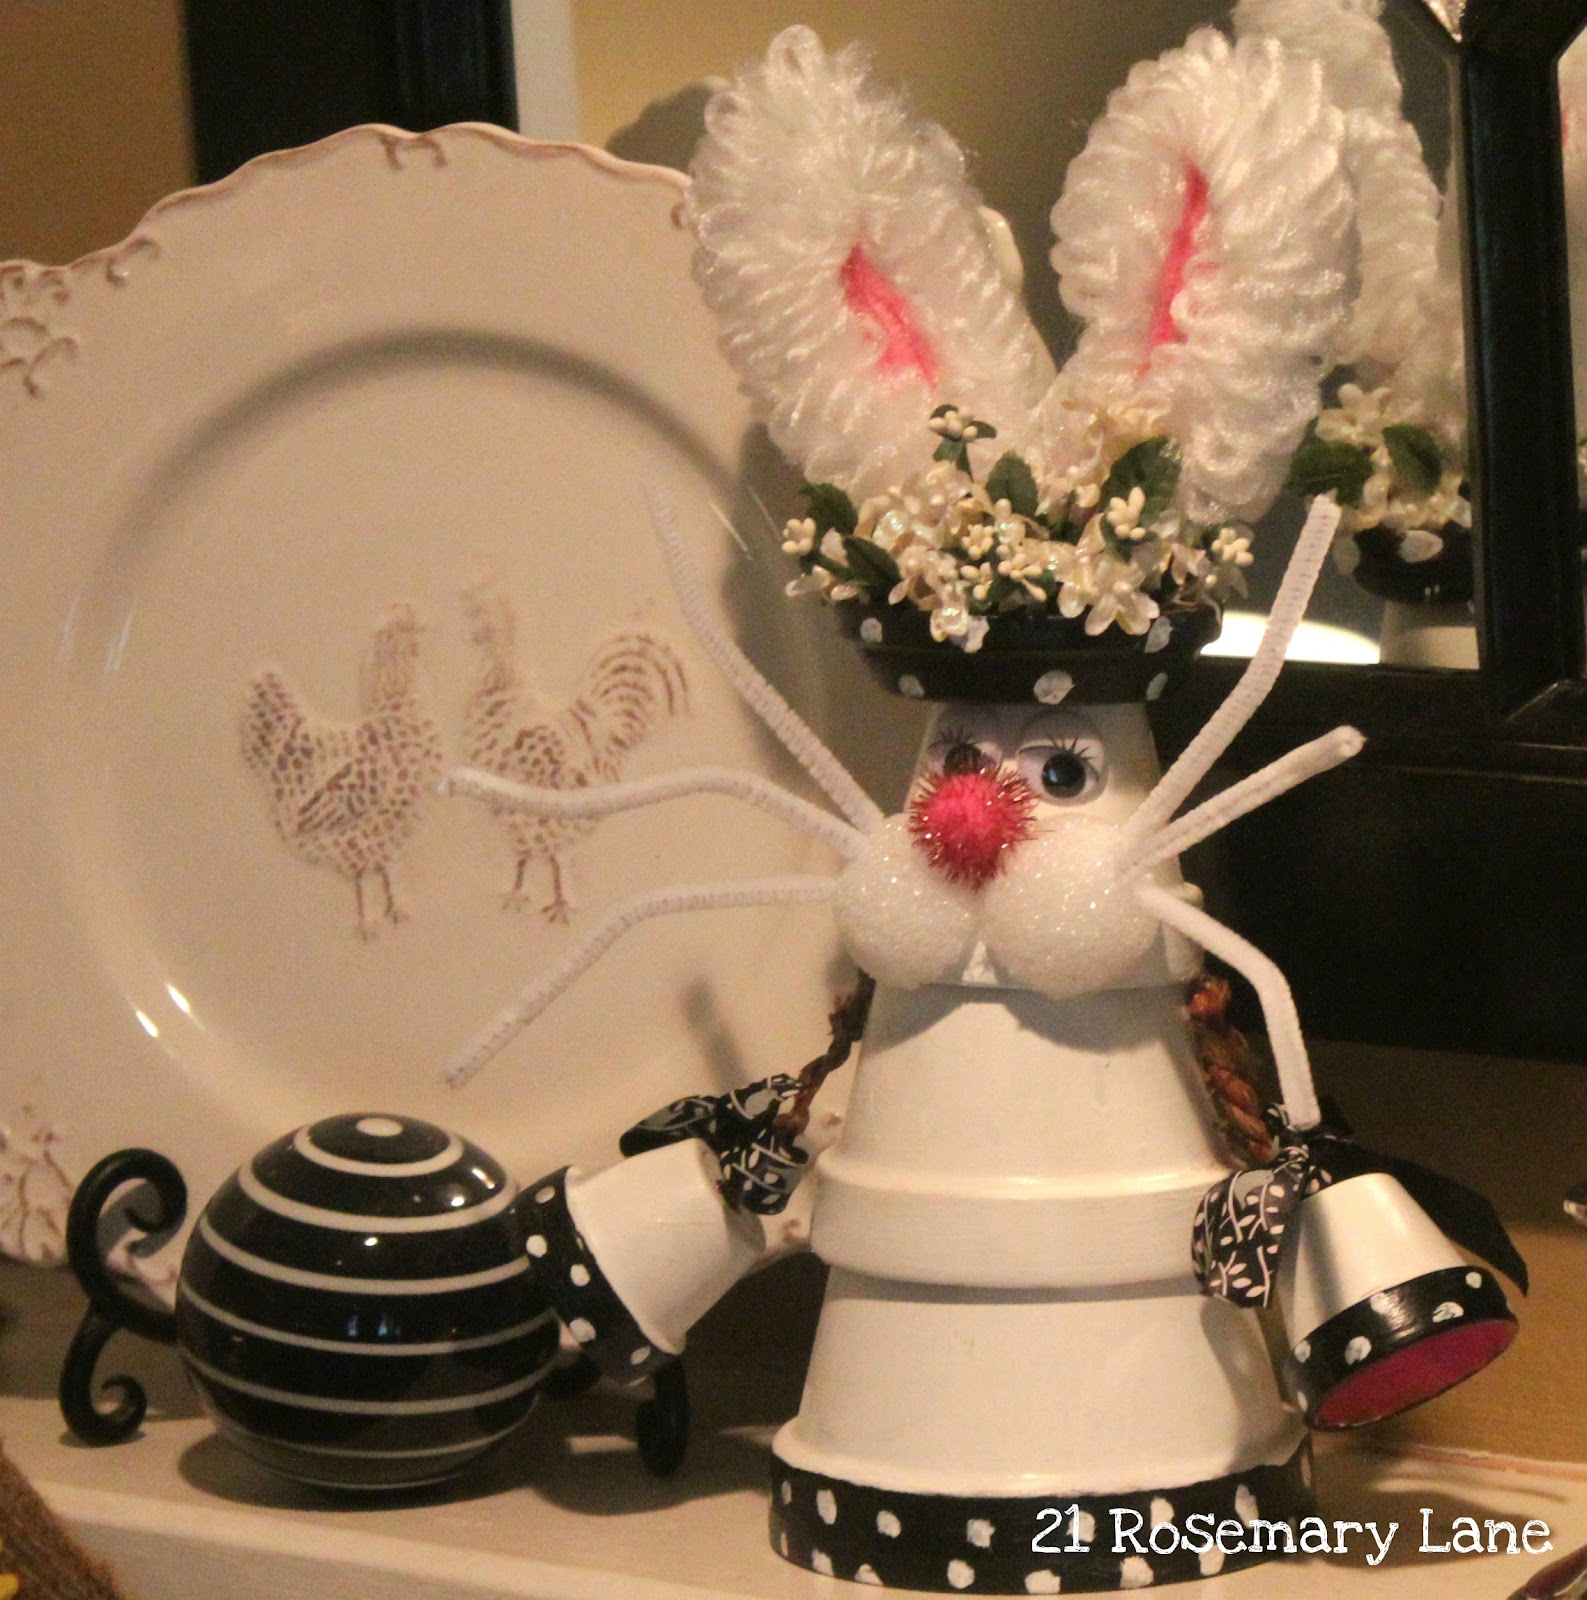 Home Craft Ideas Easter Bunny Flower Pot Craft Flower Pot: 21 Rosemary Lane: Spring